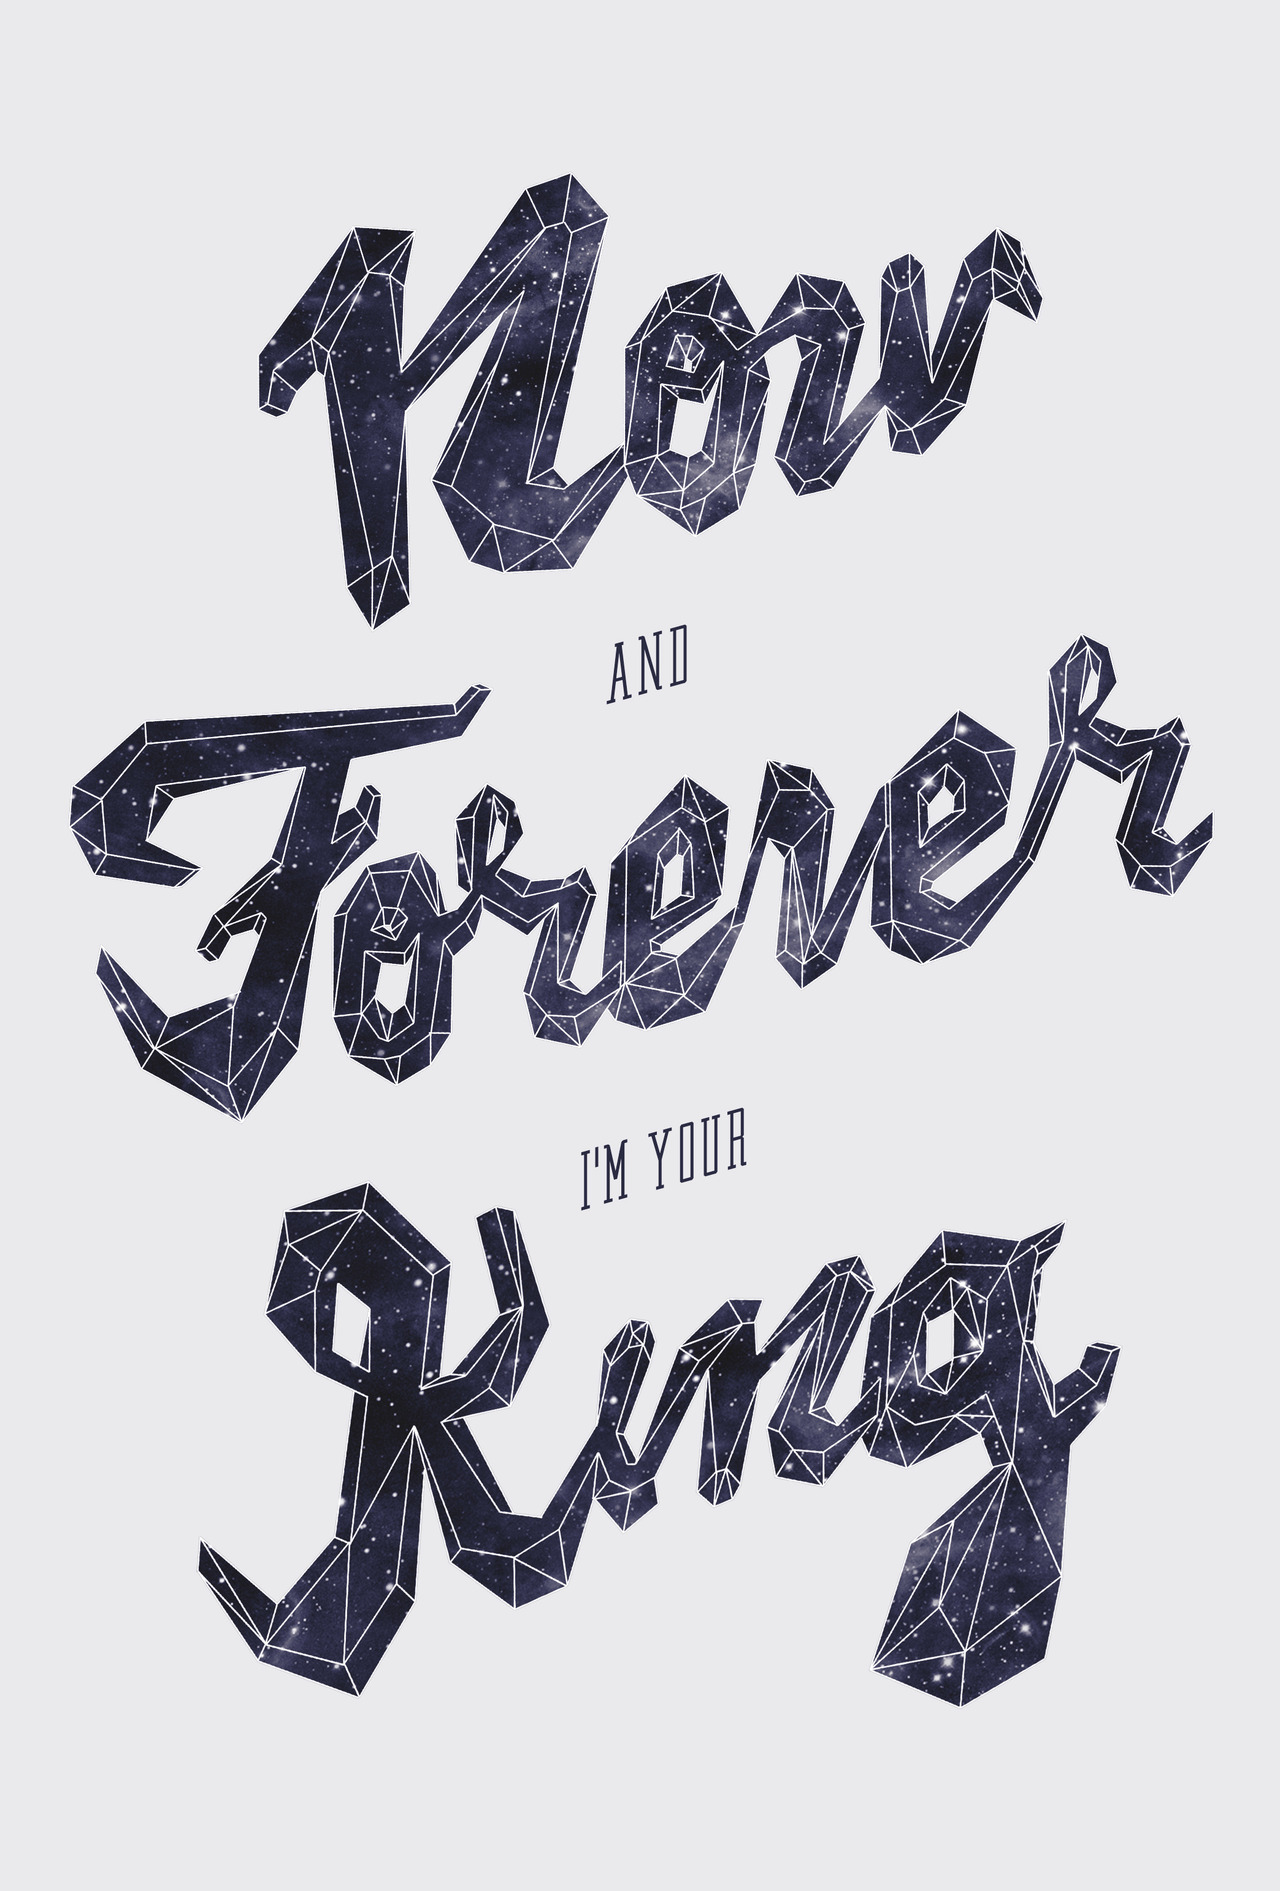 "Song: Outro by M83 ""Now and forever, I'm your king"" Inspiration from the movie Art of Flight"